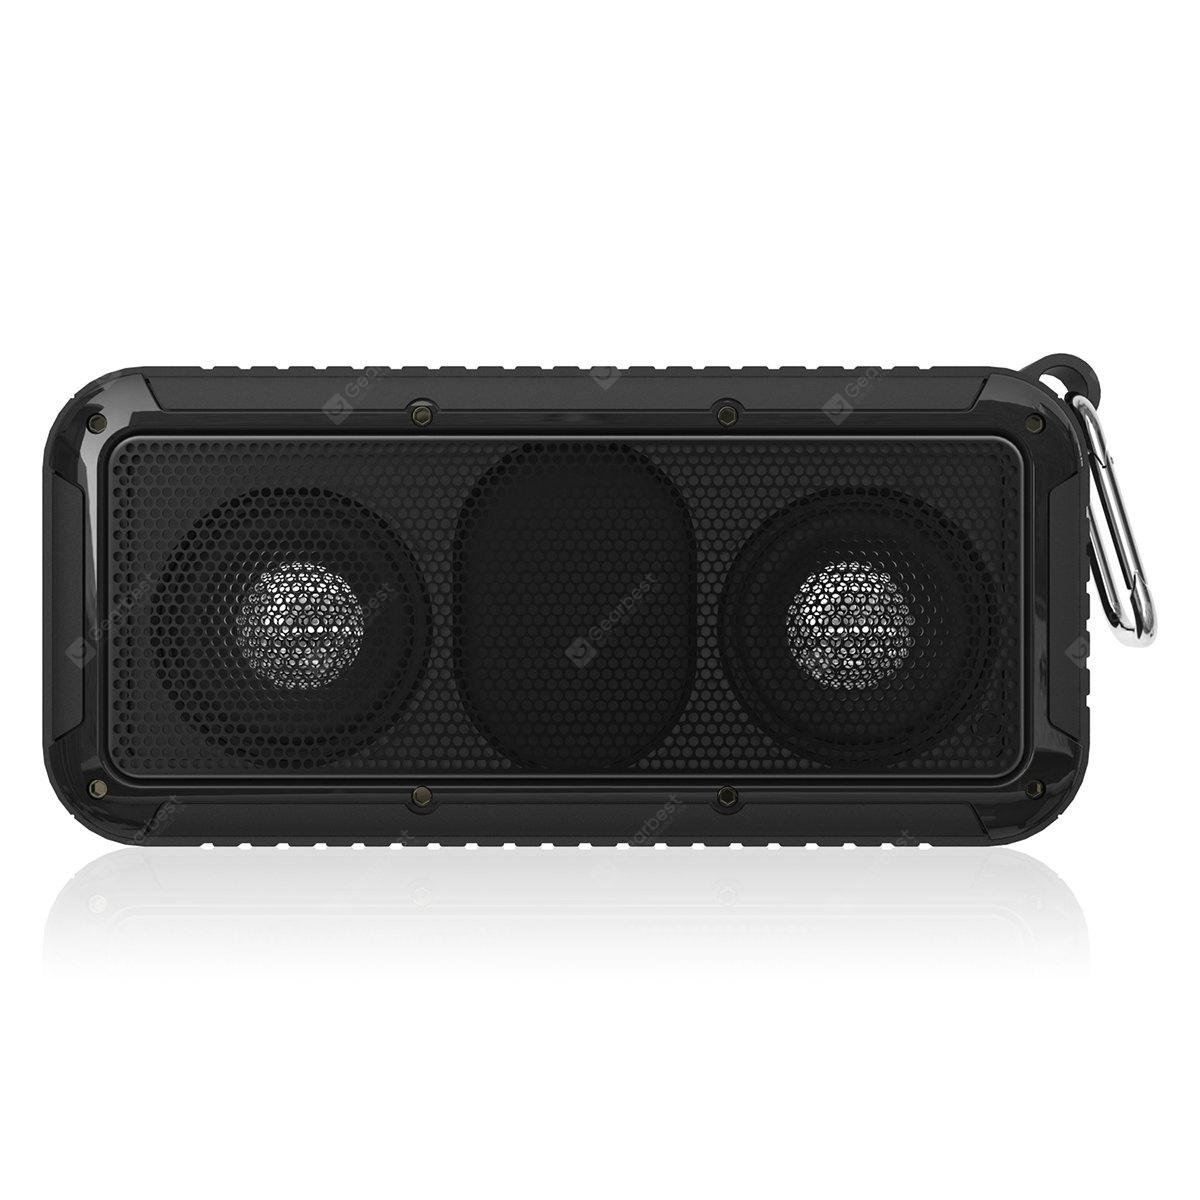 Zinsoko Z-S01 Waterproof Wireless Speaker